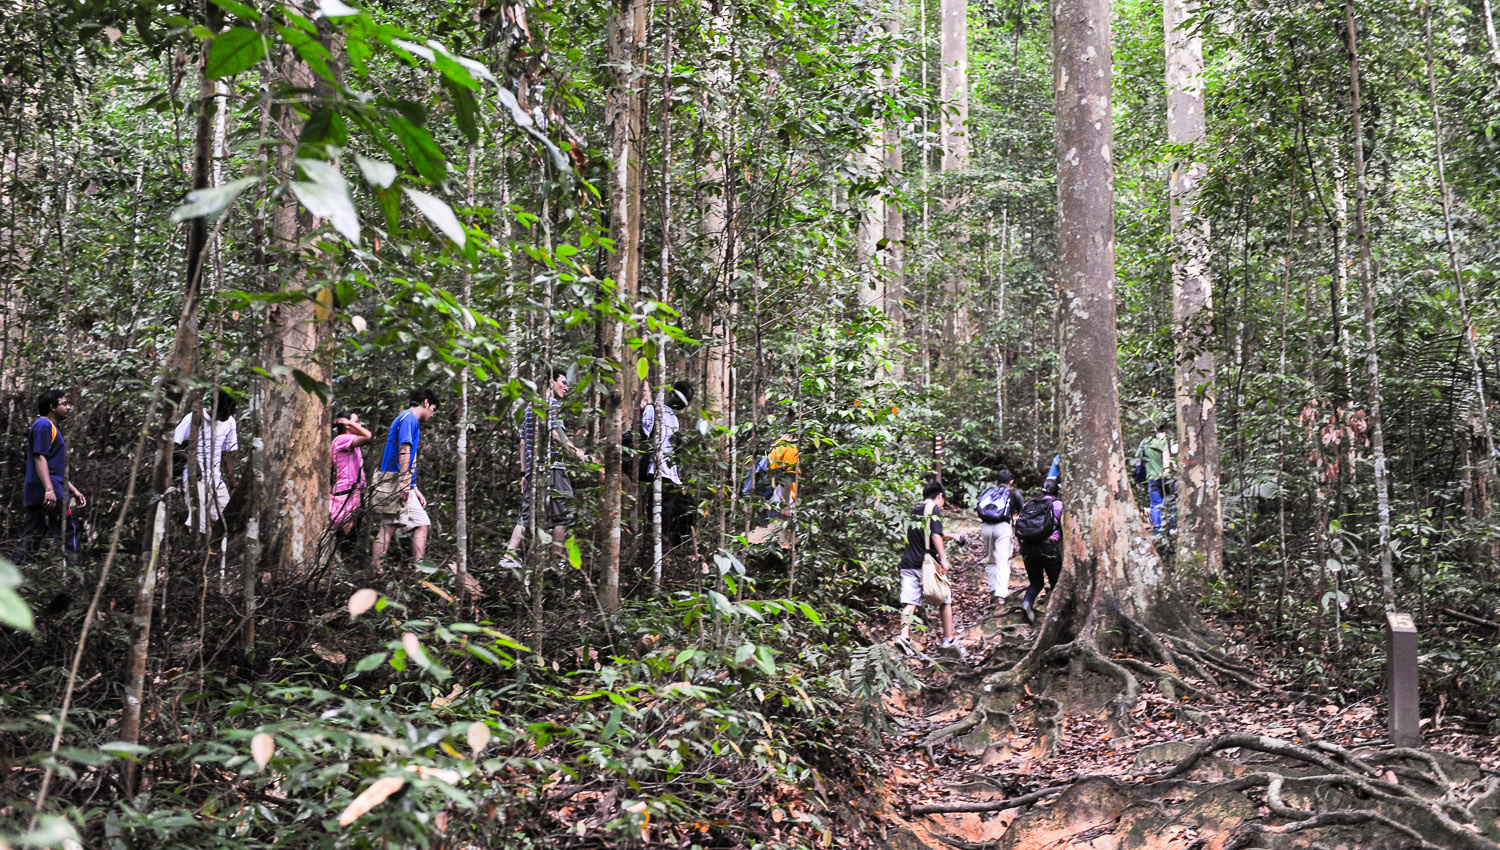 Hikers on a guided rainforest walk at FRIM. Image:  © David Astley